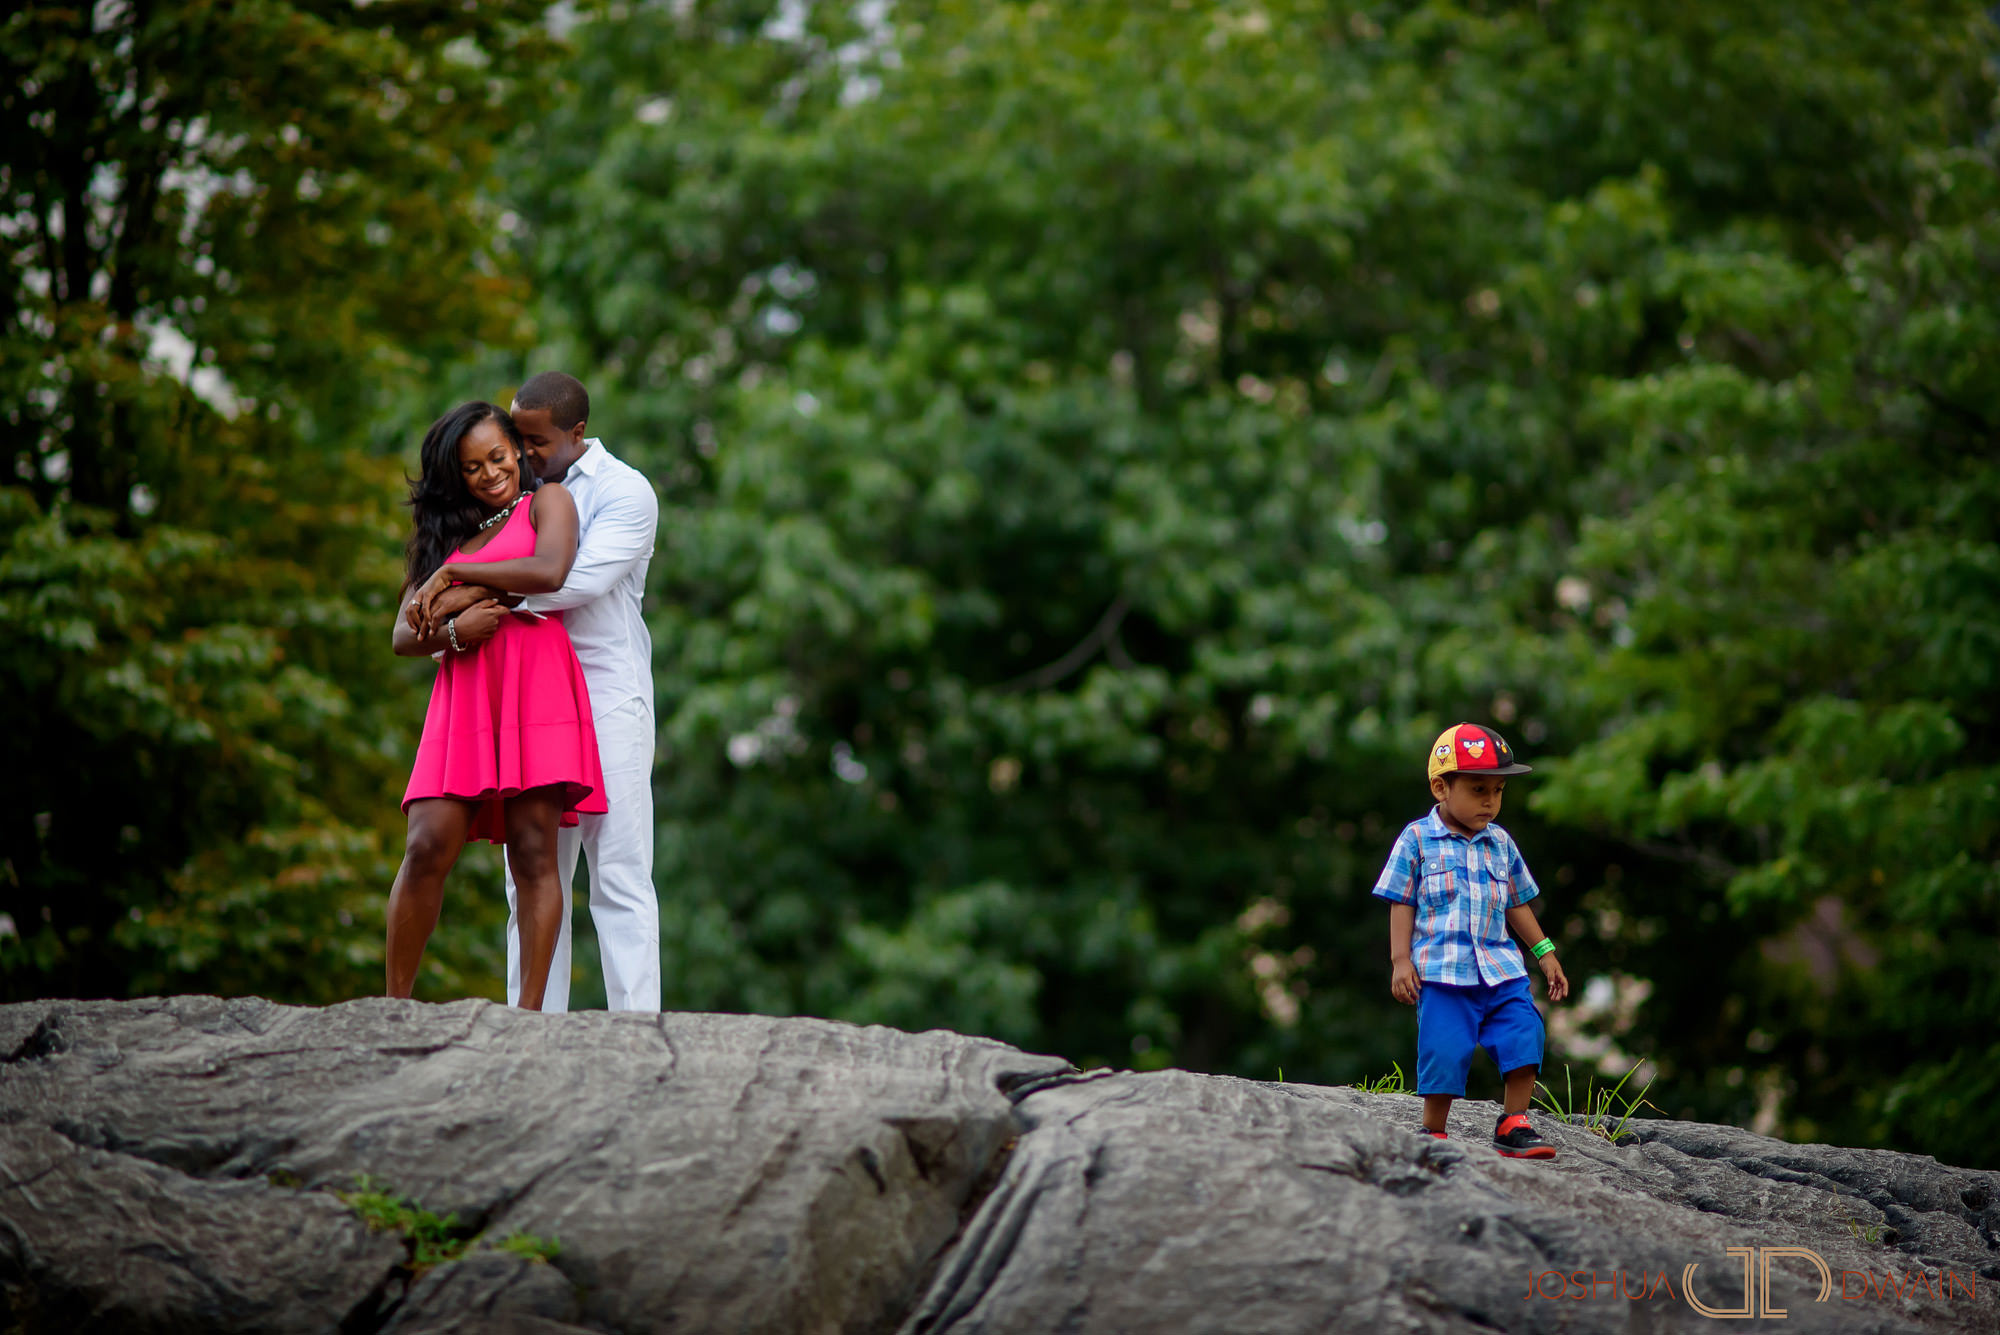 sandra-otwan-007-central-park-lincoln-center-new-yorkpre-wedding-photos-joshua-dwain